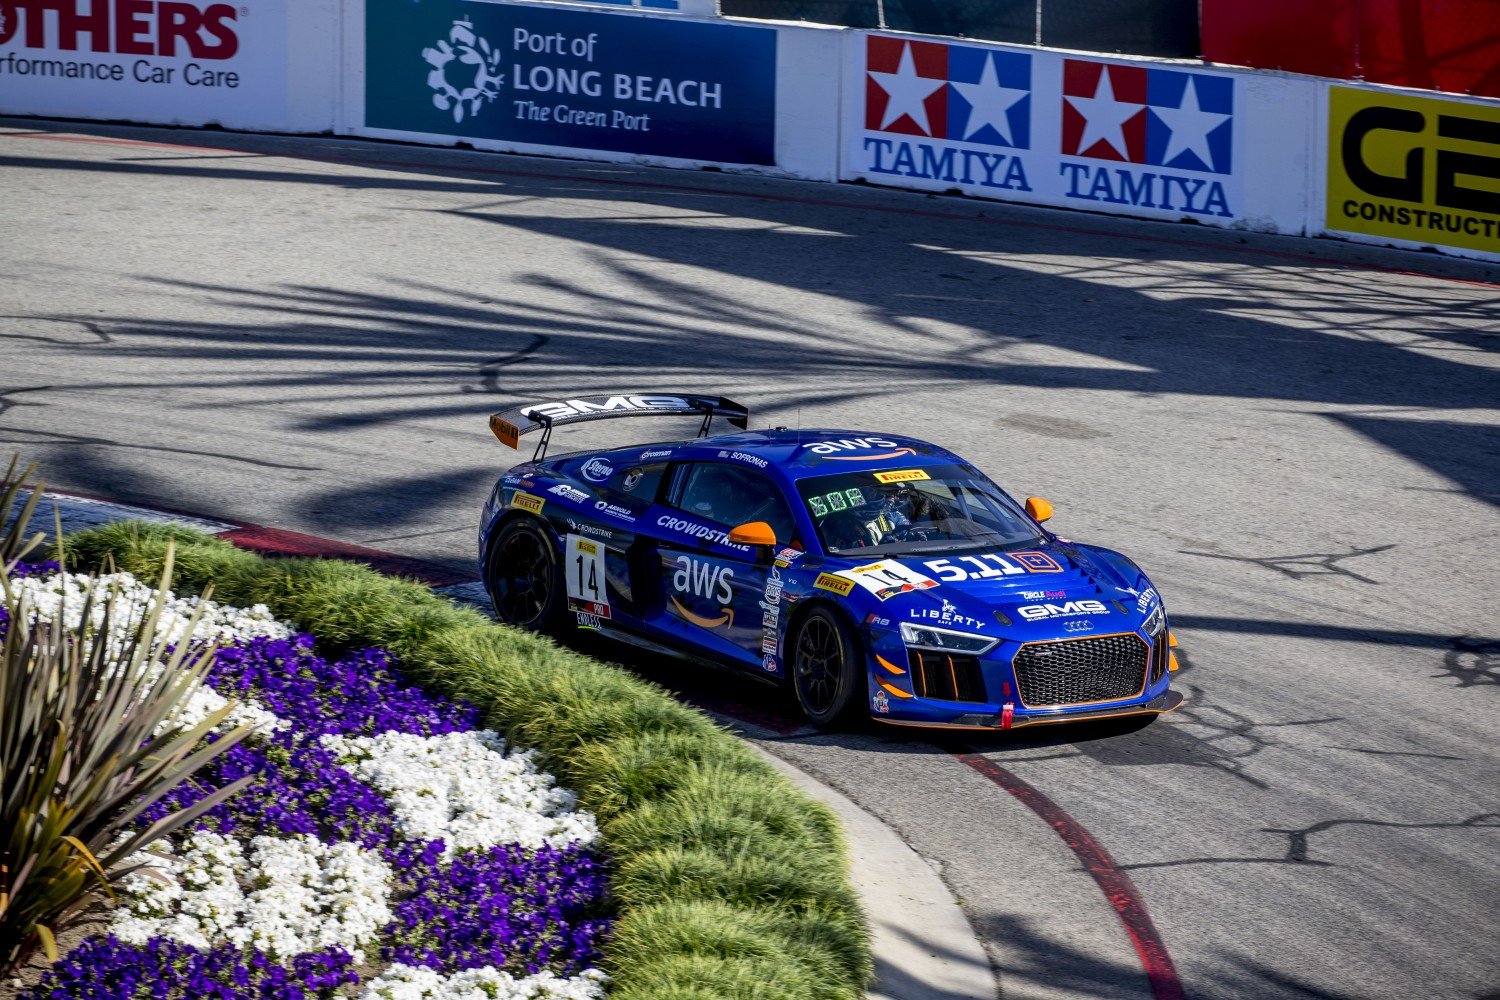 #14 Audi R8 LMS GT4 of James Sofronas, Streets of Long Beach, Long Beach, CA.  | Brian Cleary/SRO